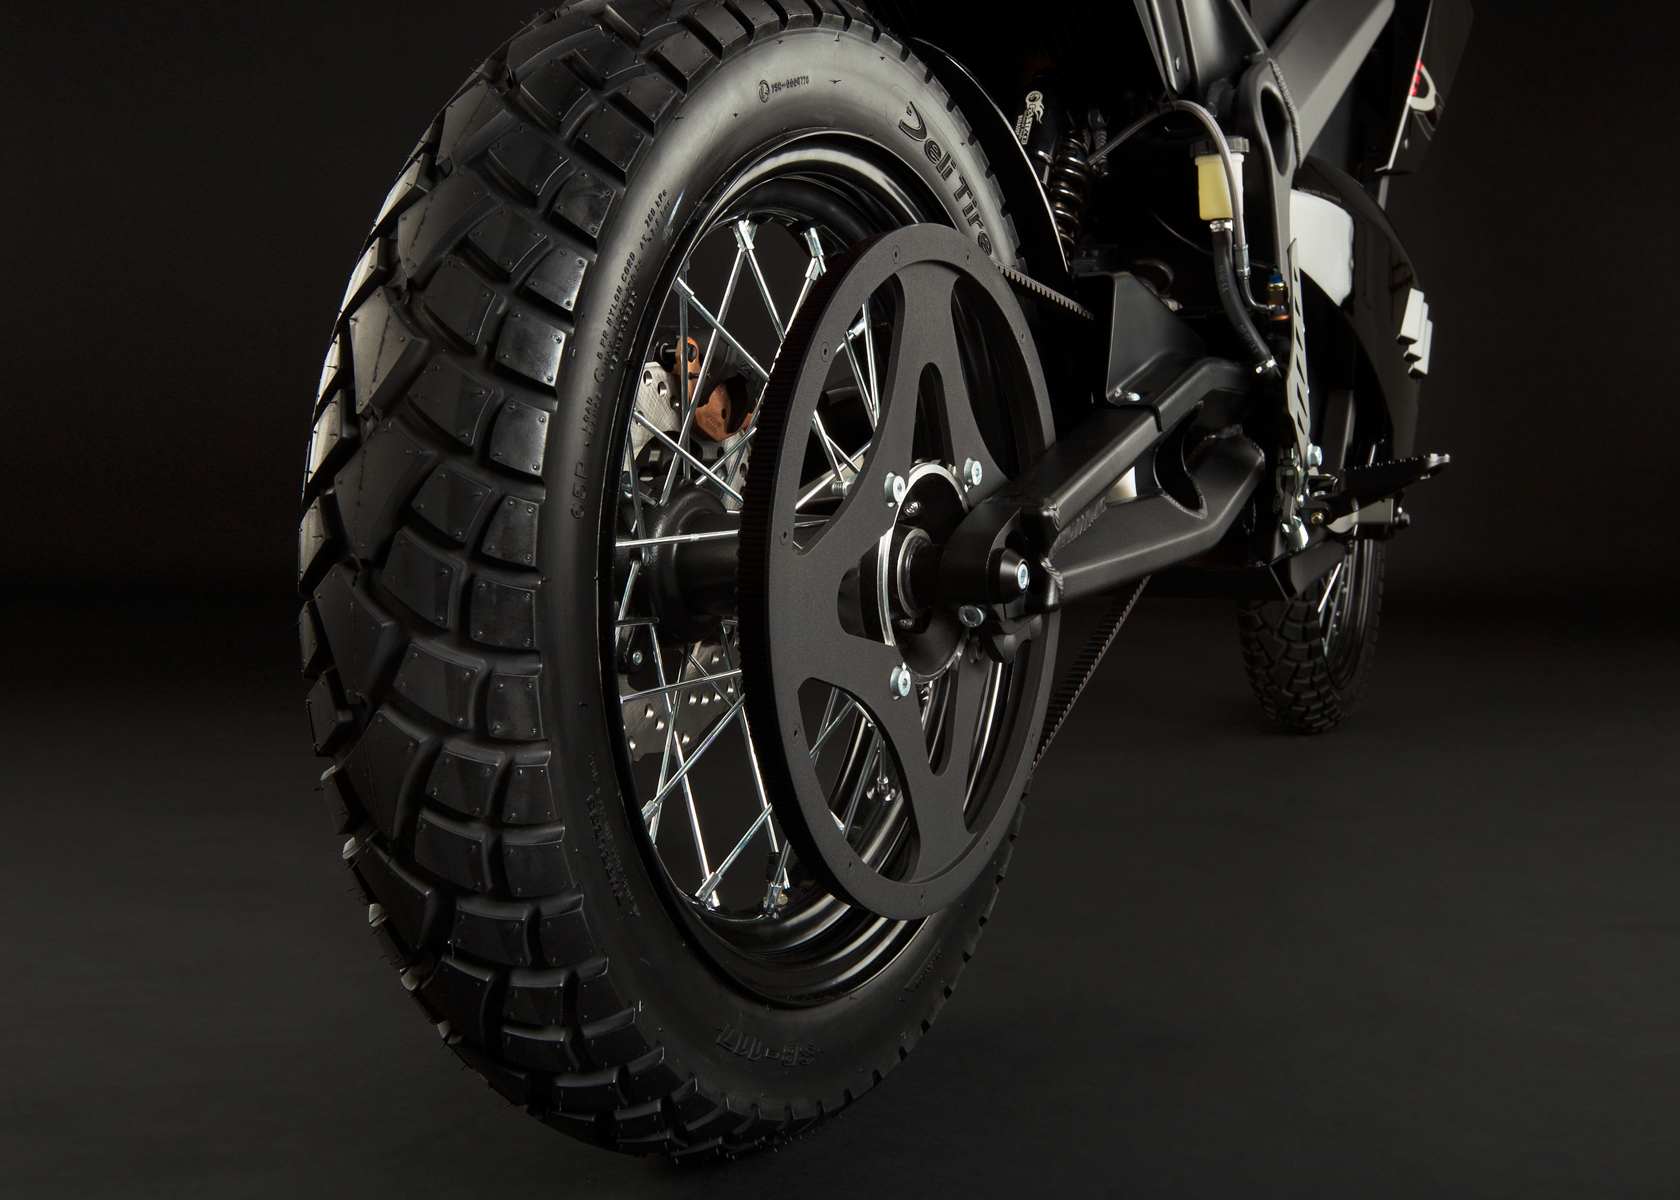 '.2012 Zero DS Electric Motorcycle: Drivetrain / Chain / Sprocket.'